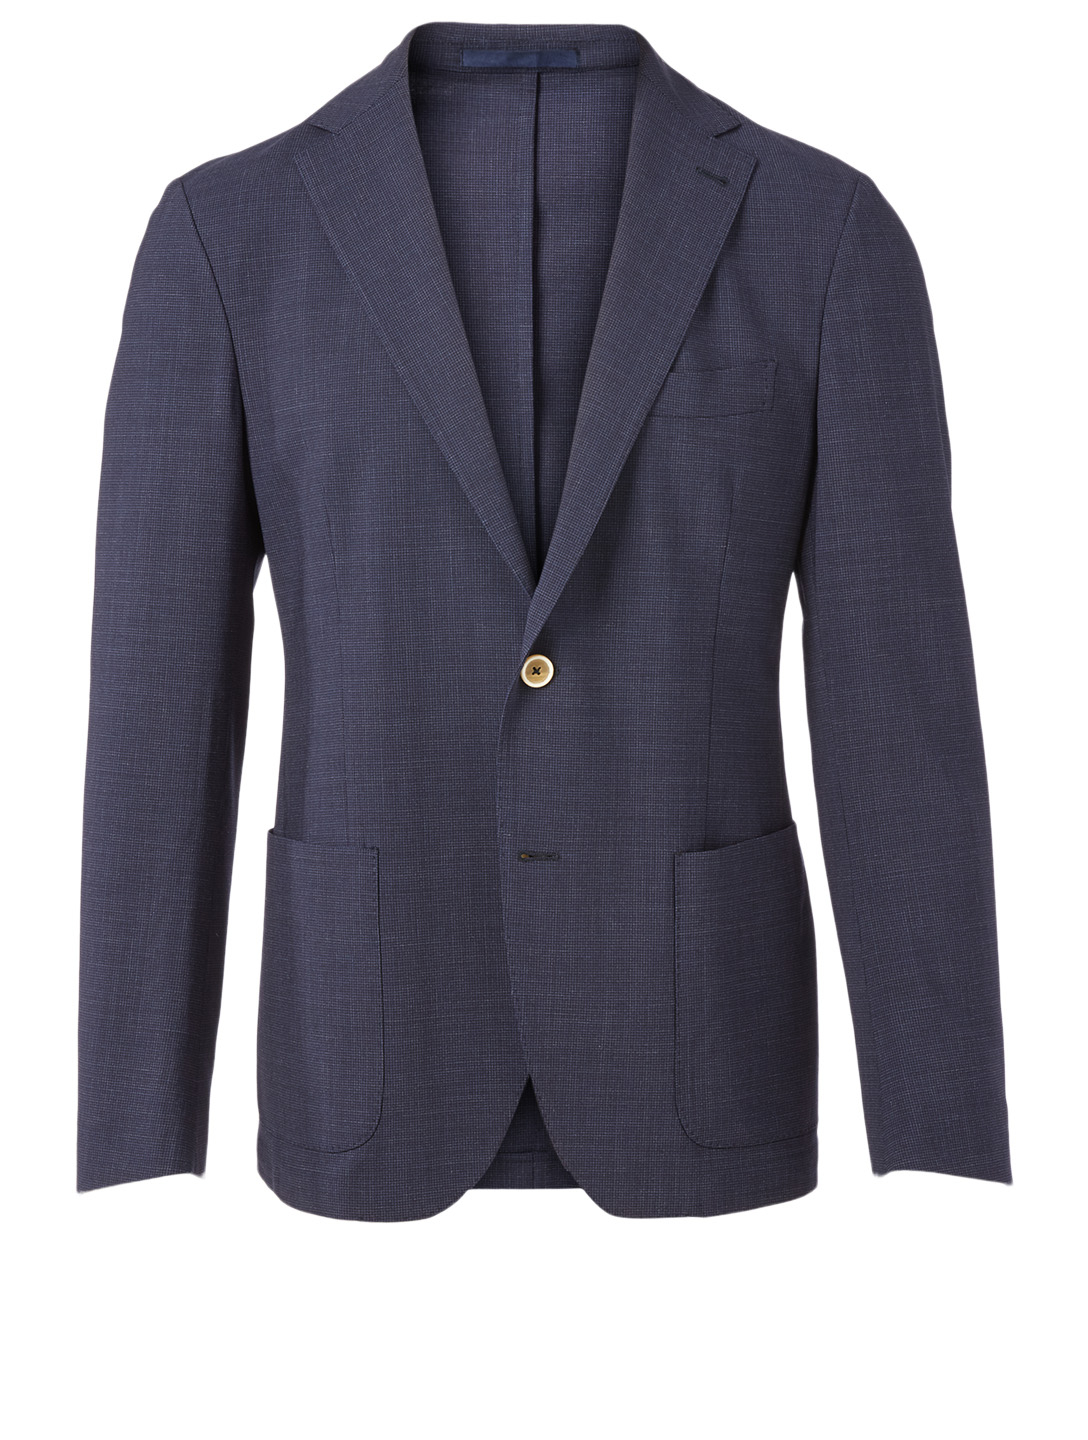 ELEVENTY Wool-Blend Jacket In Check Print Men's Blue